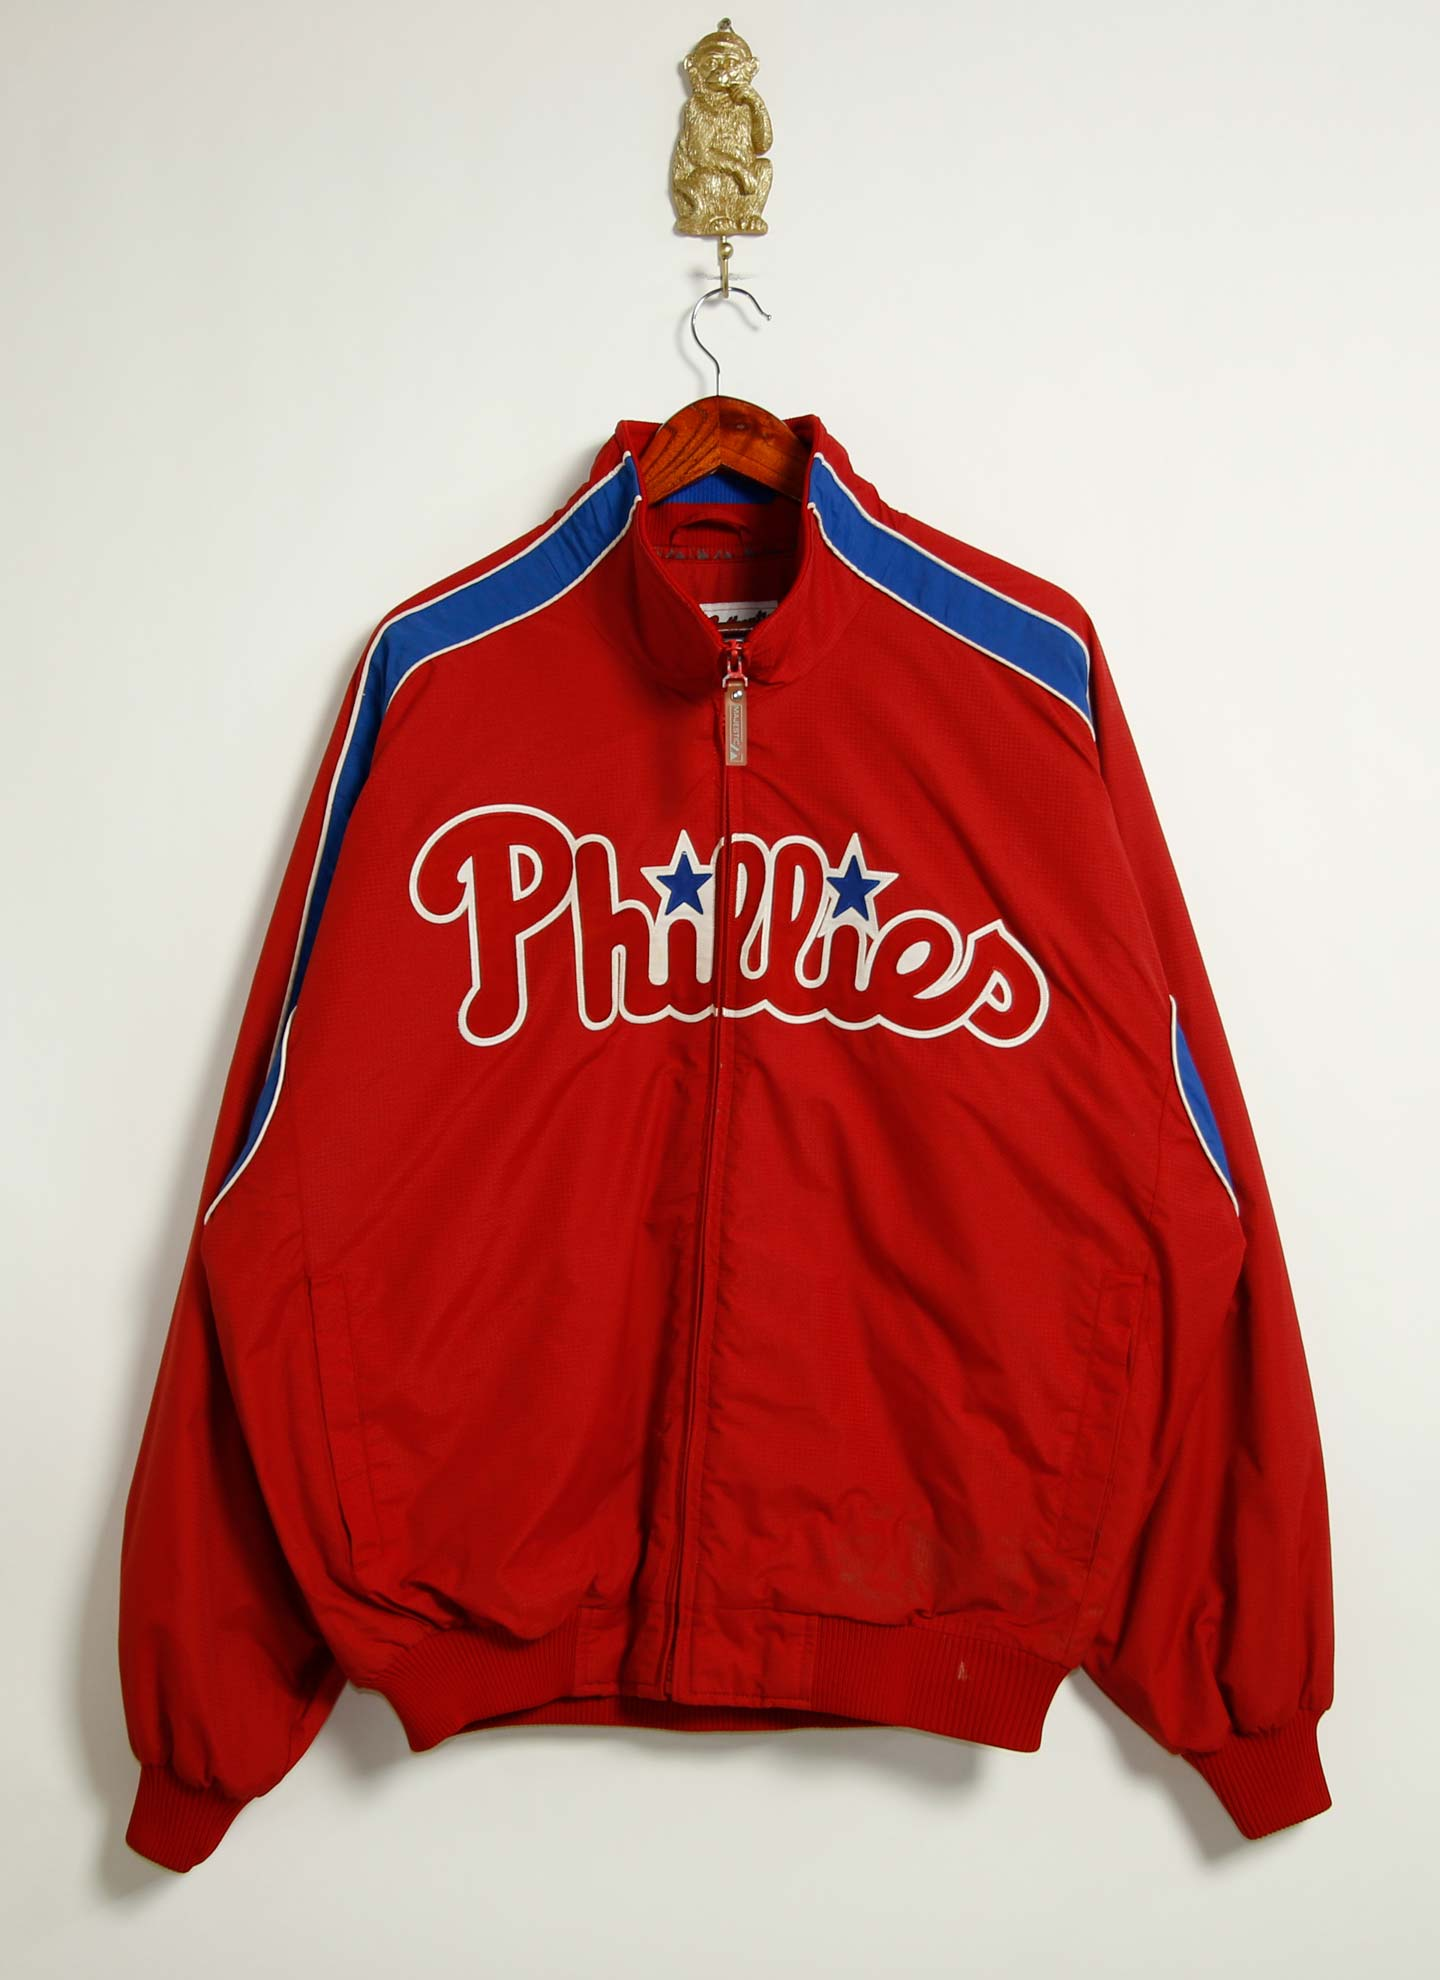 Phillies Baseball Jacket